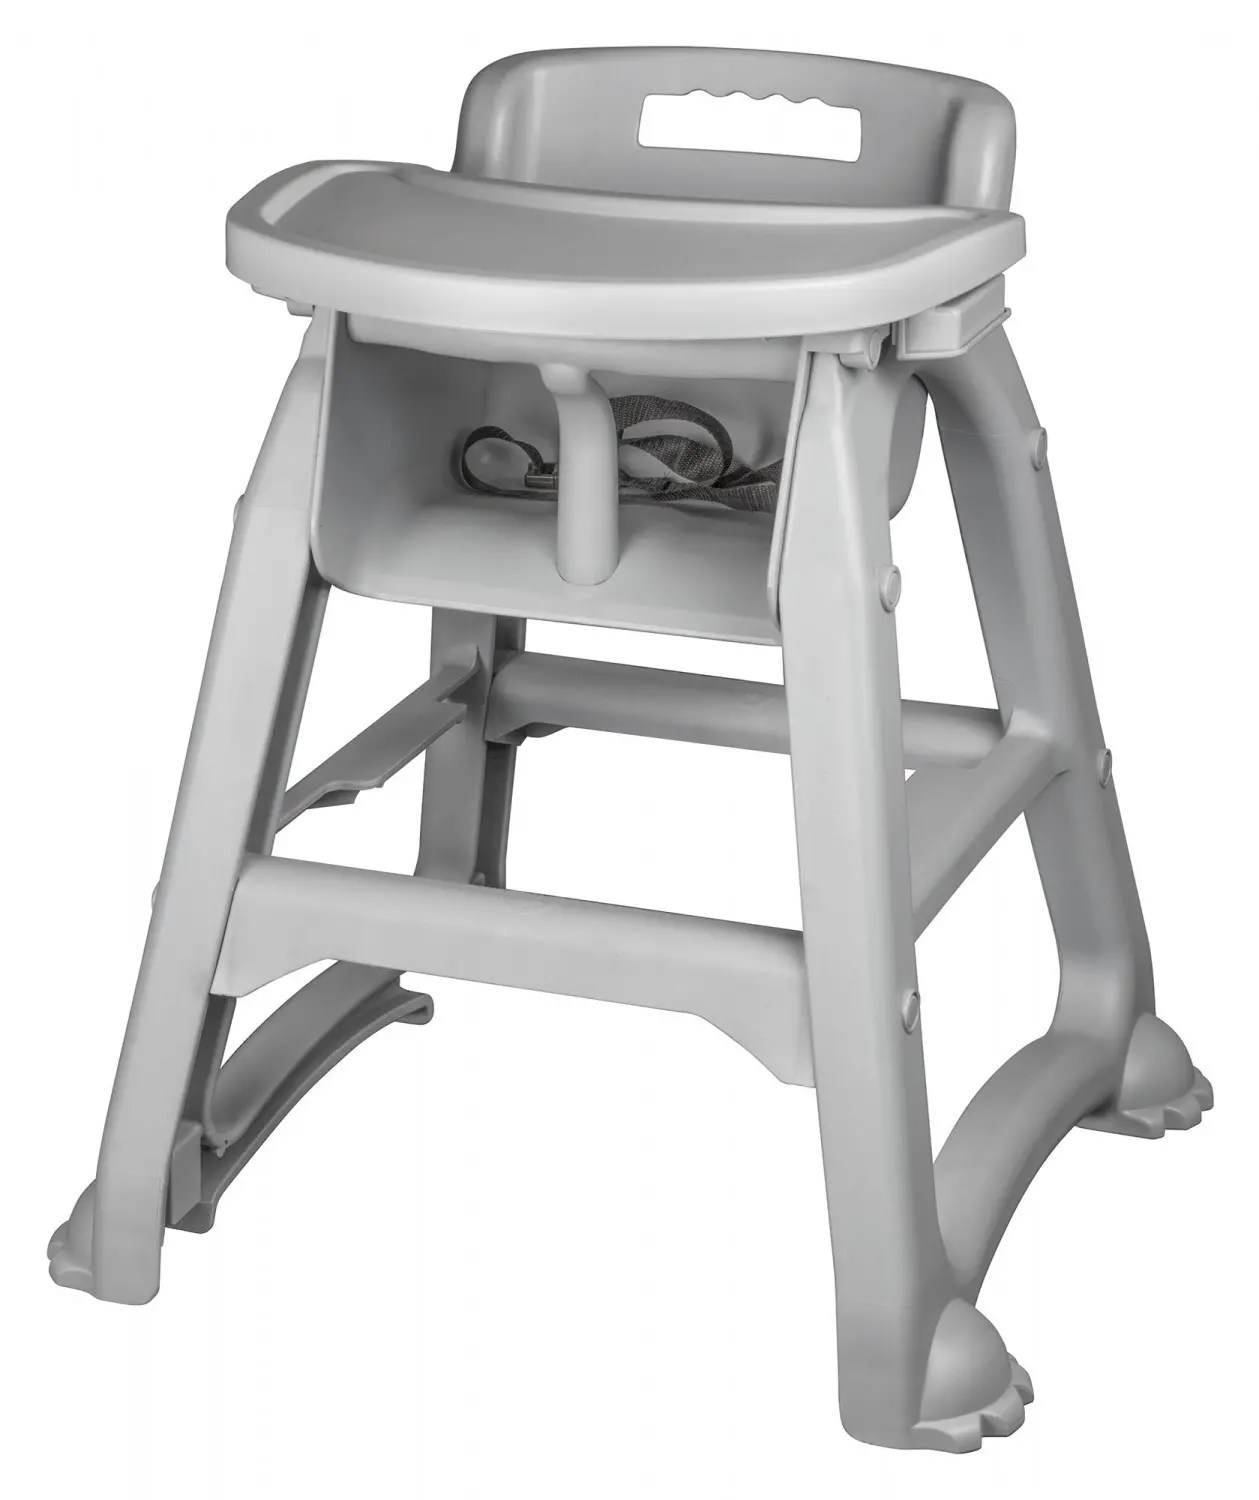 restaurant high chair with tray giant camp winco chh 25 plastic